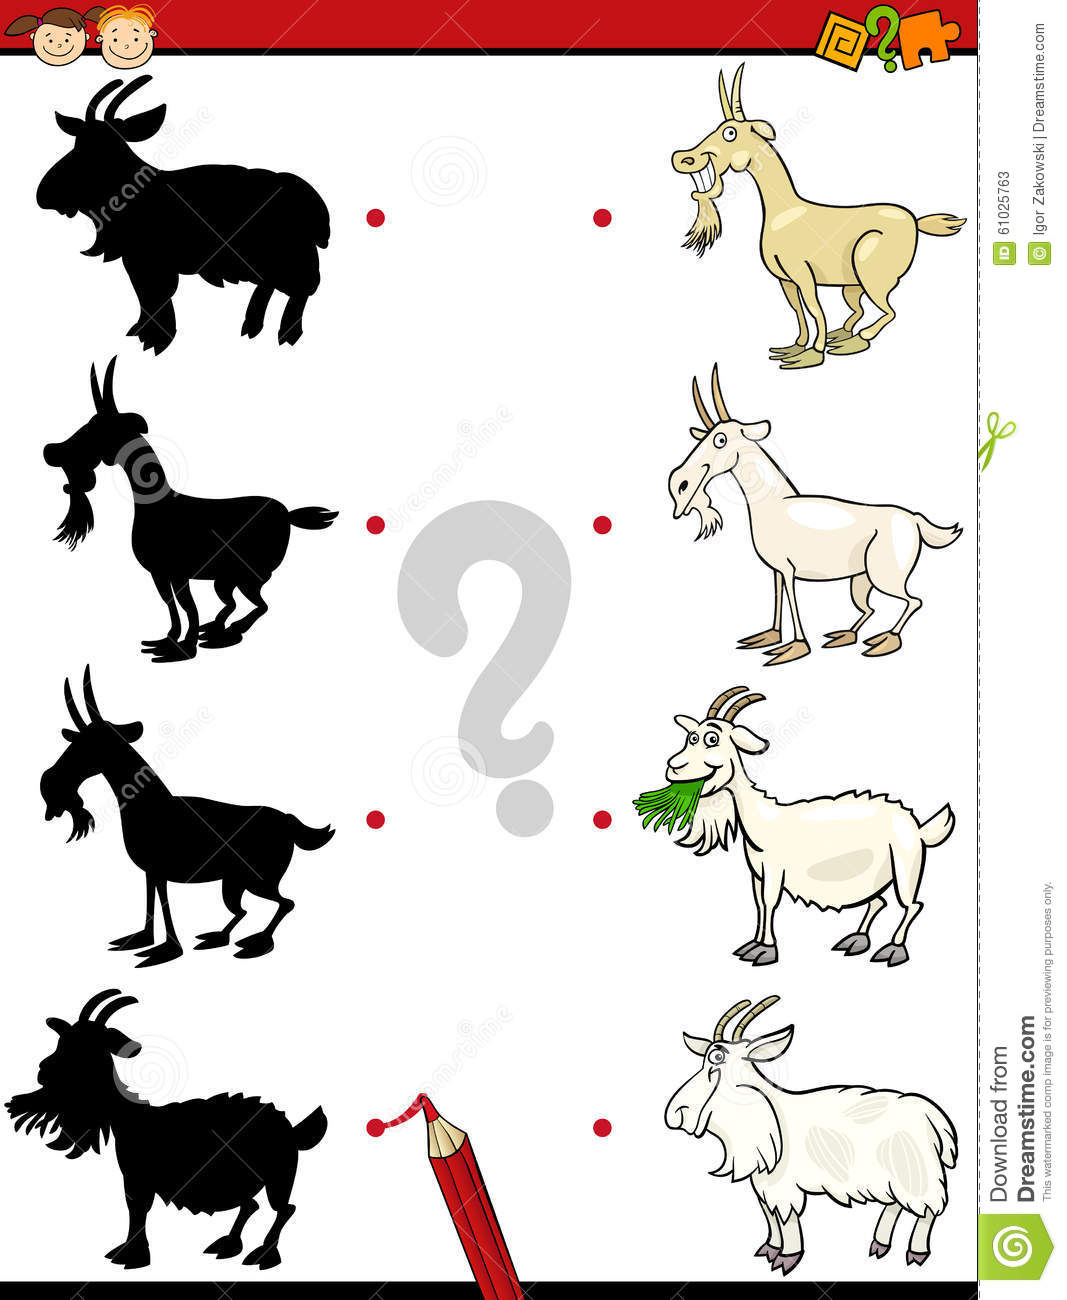 Shadows Task With Goat Stock Vector